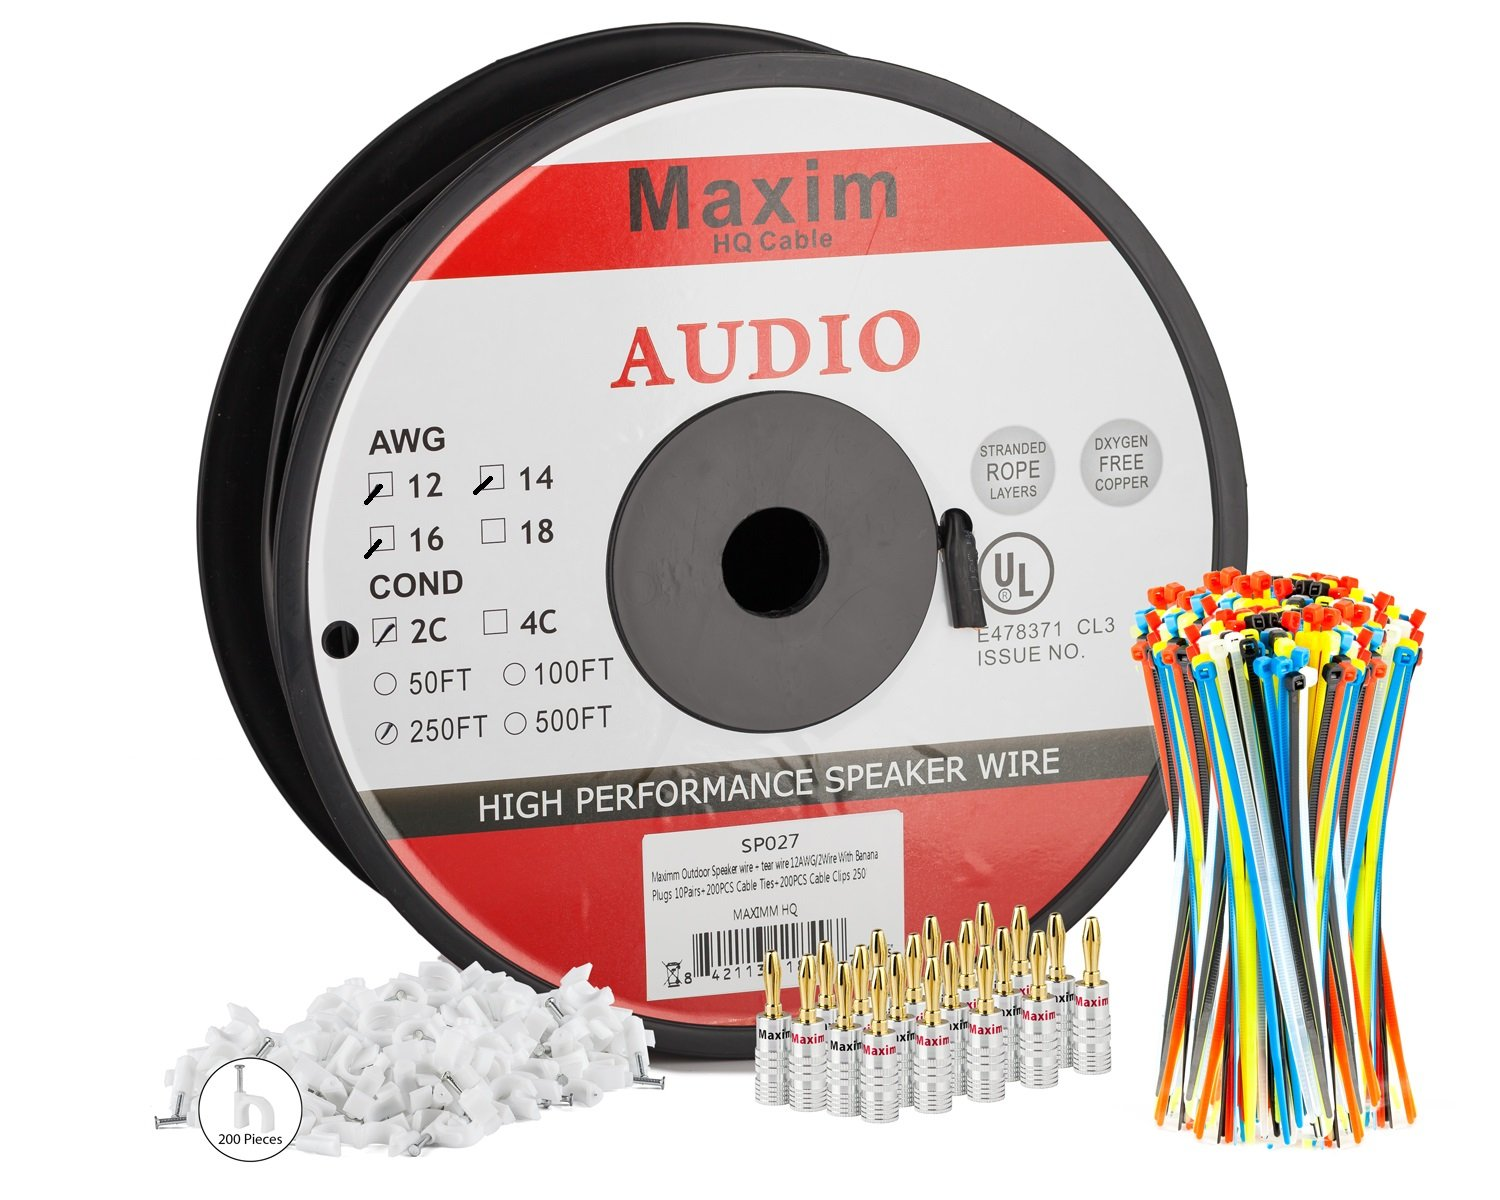 Maximm Direct Burial Speaker Wire - 250 Feet - 12AWG CL3 Rated 2-Conductor Wire Black 99.9% Oxygen Free Copper - Banana plugs, Cable clips and ties Included by Maximm